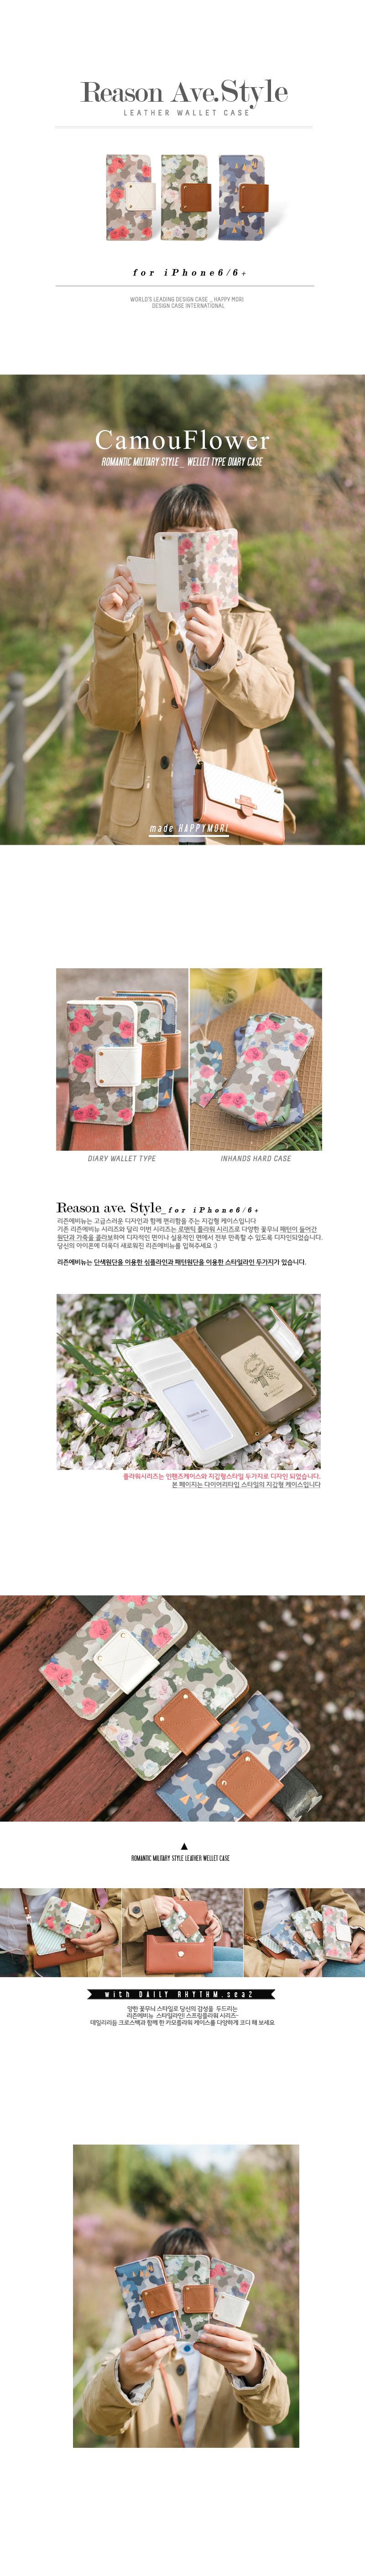 [HAPPYMORI]Faux Leather Case _ Reason Ave.Style Camou Flower / wallet case / 3color (iPhone6,iPhone6Plus)